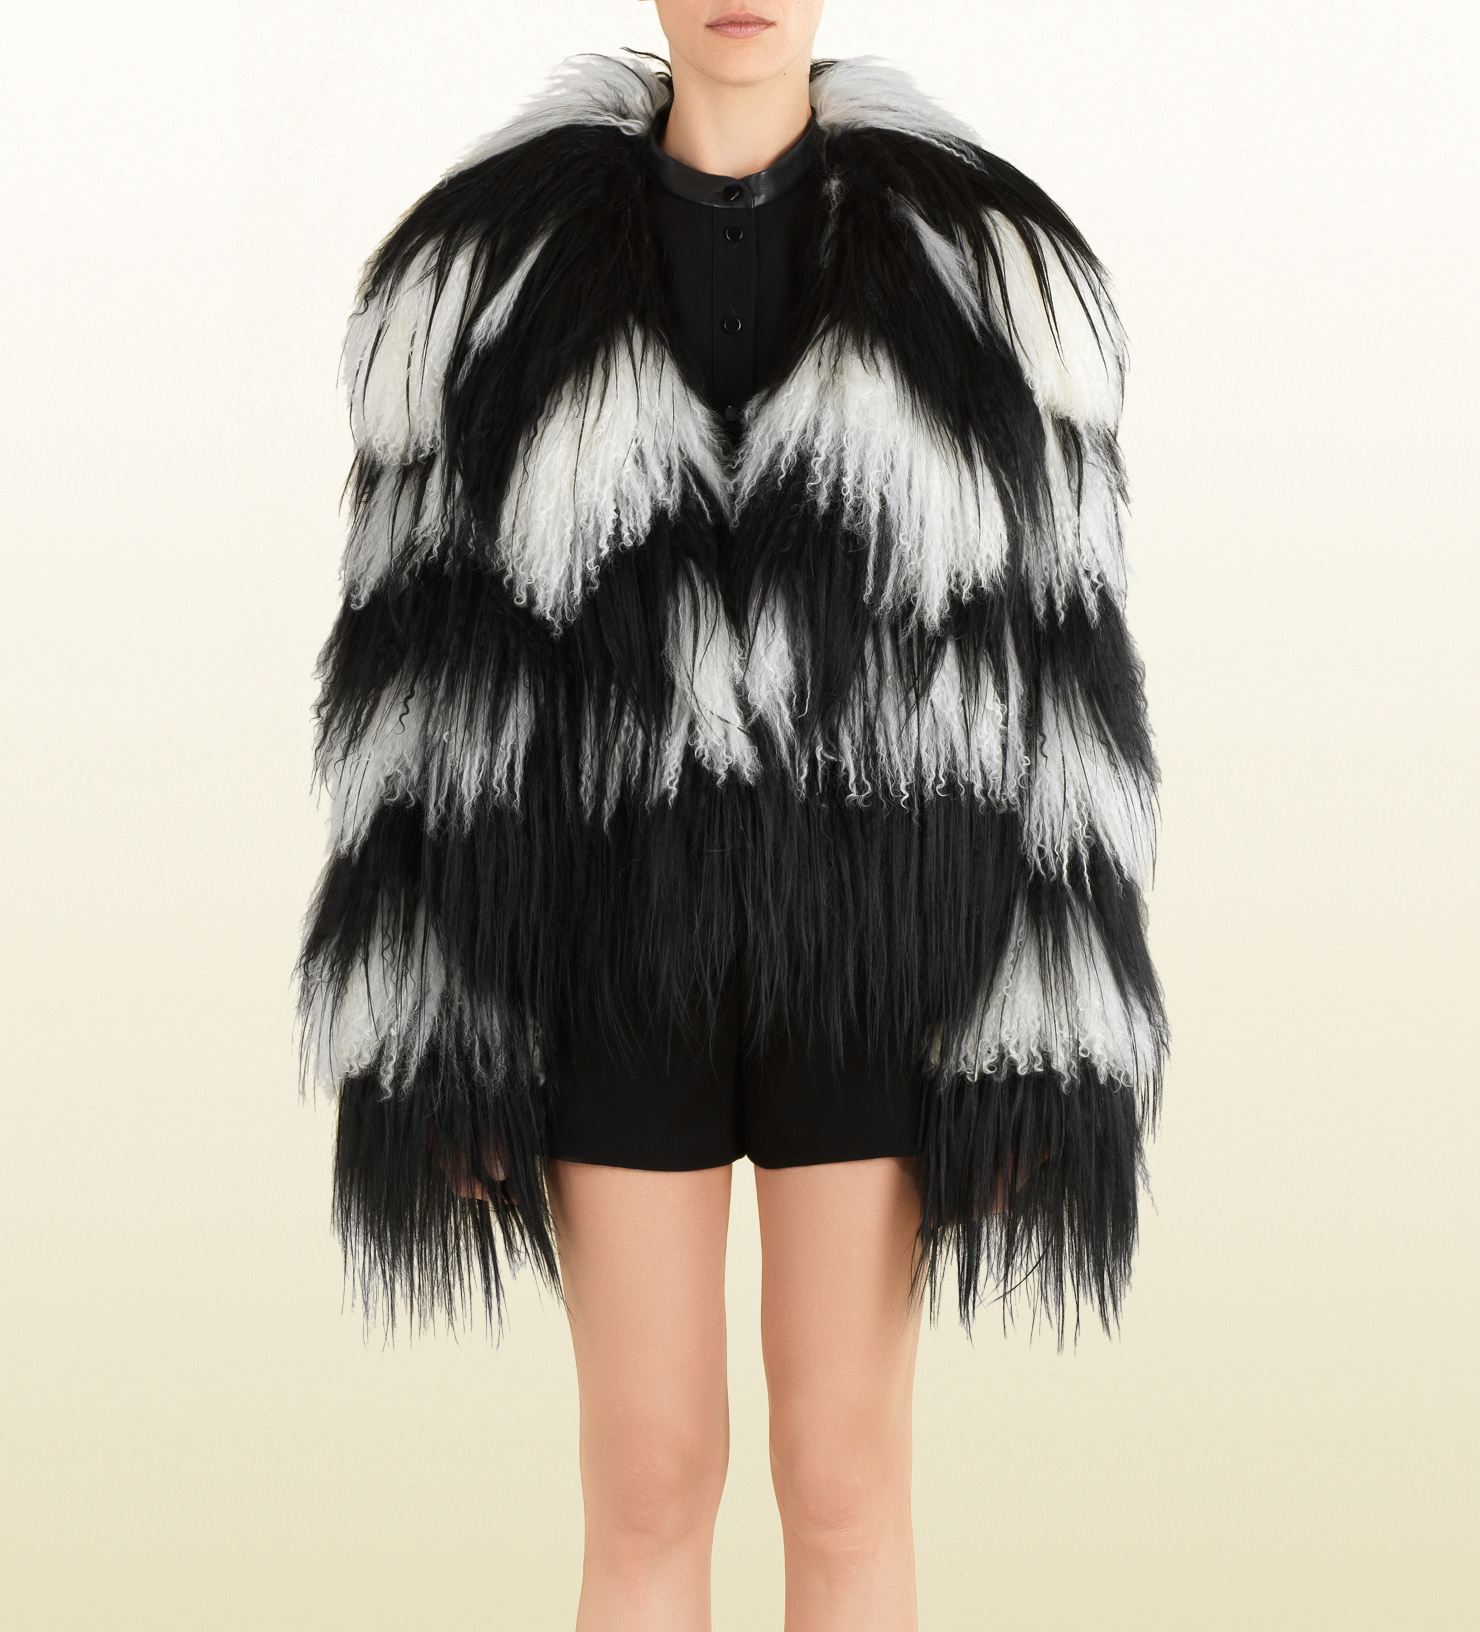 Gucci Black and White Striped Fur Jacket in Black | Lyst